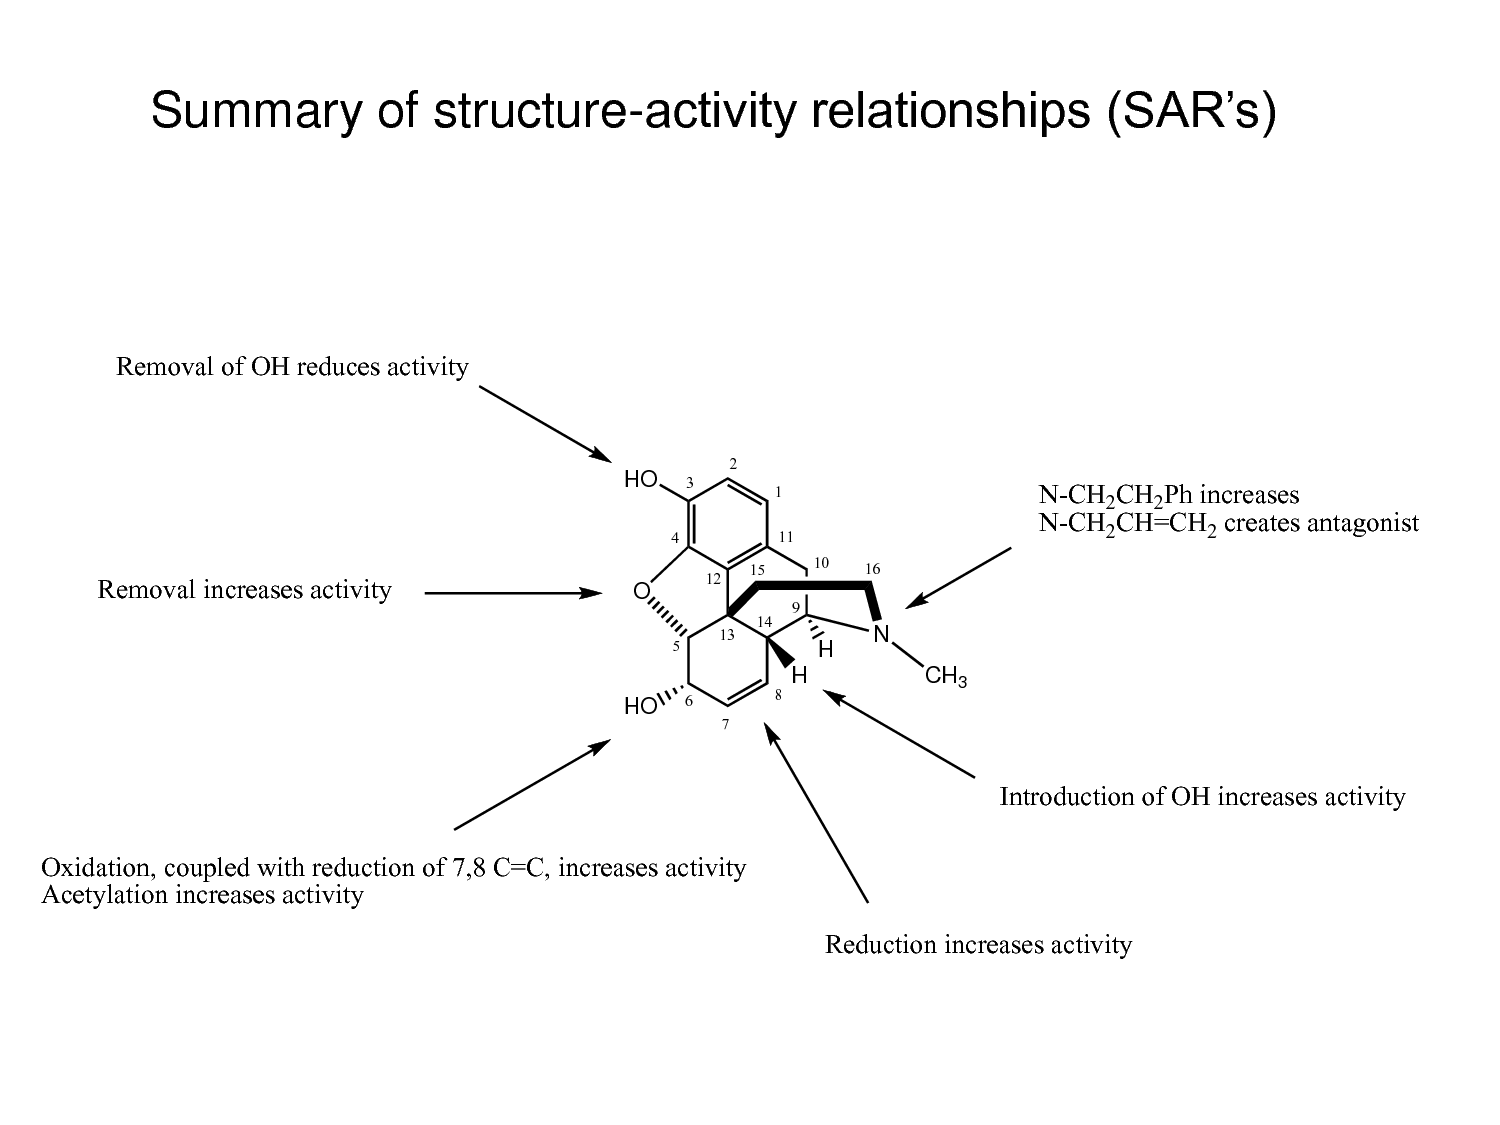 ranitidine structure activity relationship of morphine